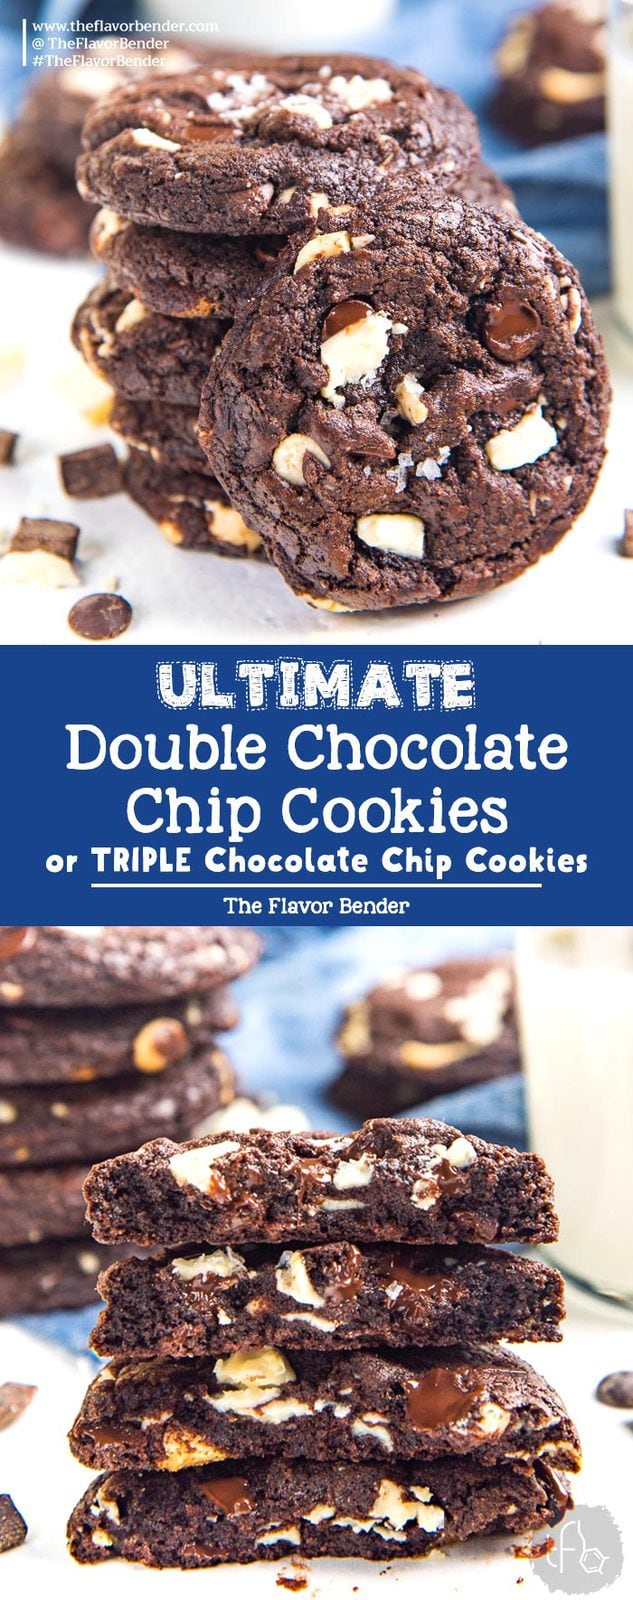 Ultimate Double Chocolate Chip Cookies (or Triple Chocolate Chip Cookies) - Soft and chewy Chocolate Chip Cookies with white or dark chocolate chips, or both! Easy to make and customize.#ChocolateChipCookies #DoubleChocolateChipCookies #TripleChocolateChipCookies